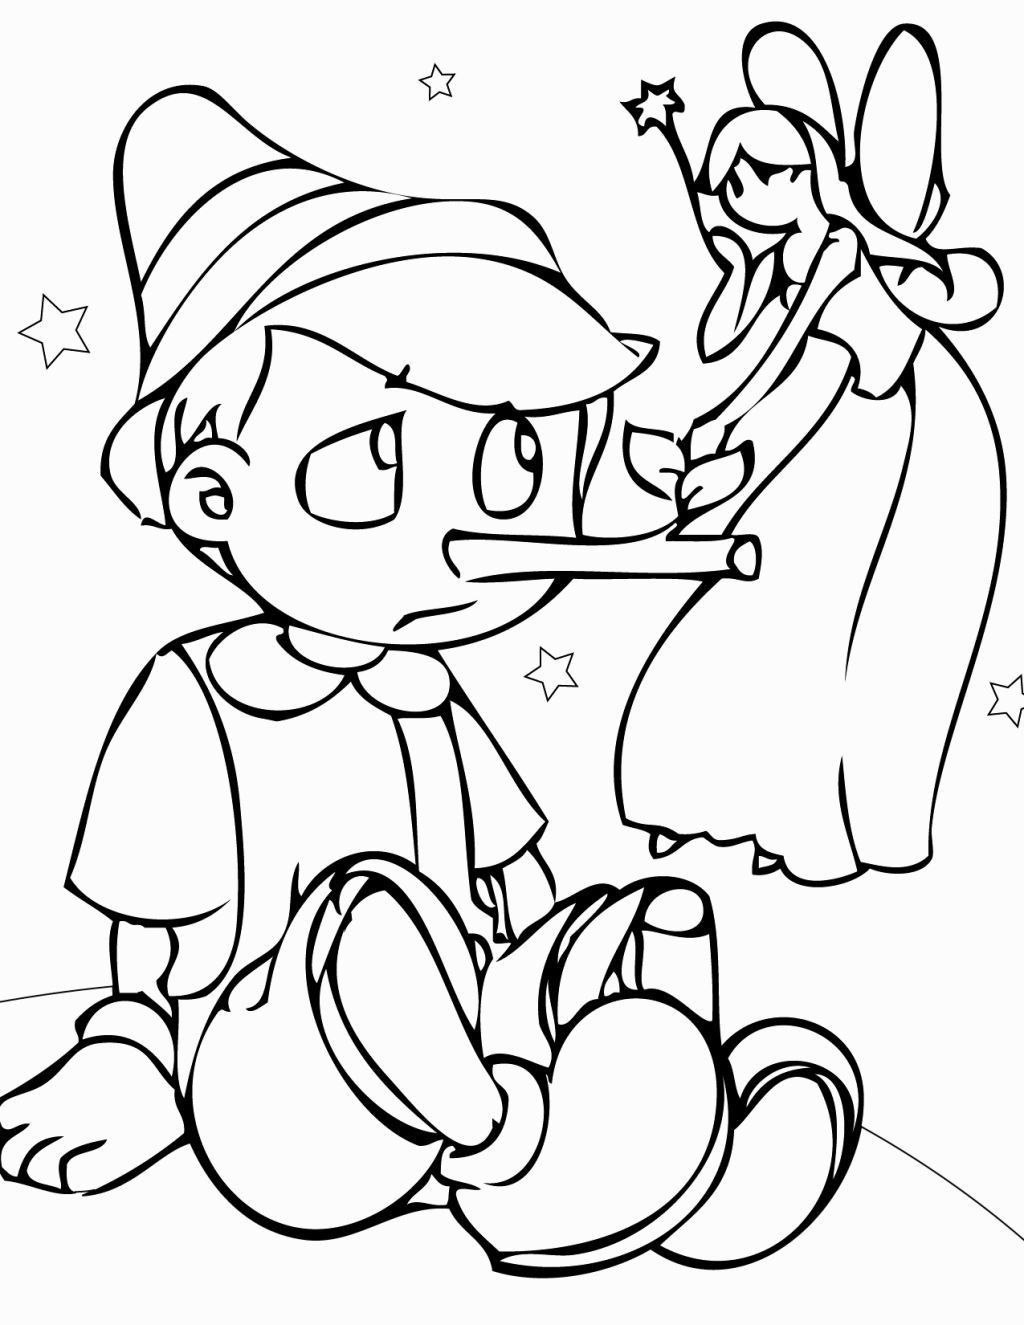 Fairy Tale Coloring Fairytale Coloring Pages Disney